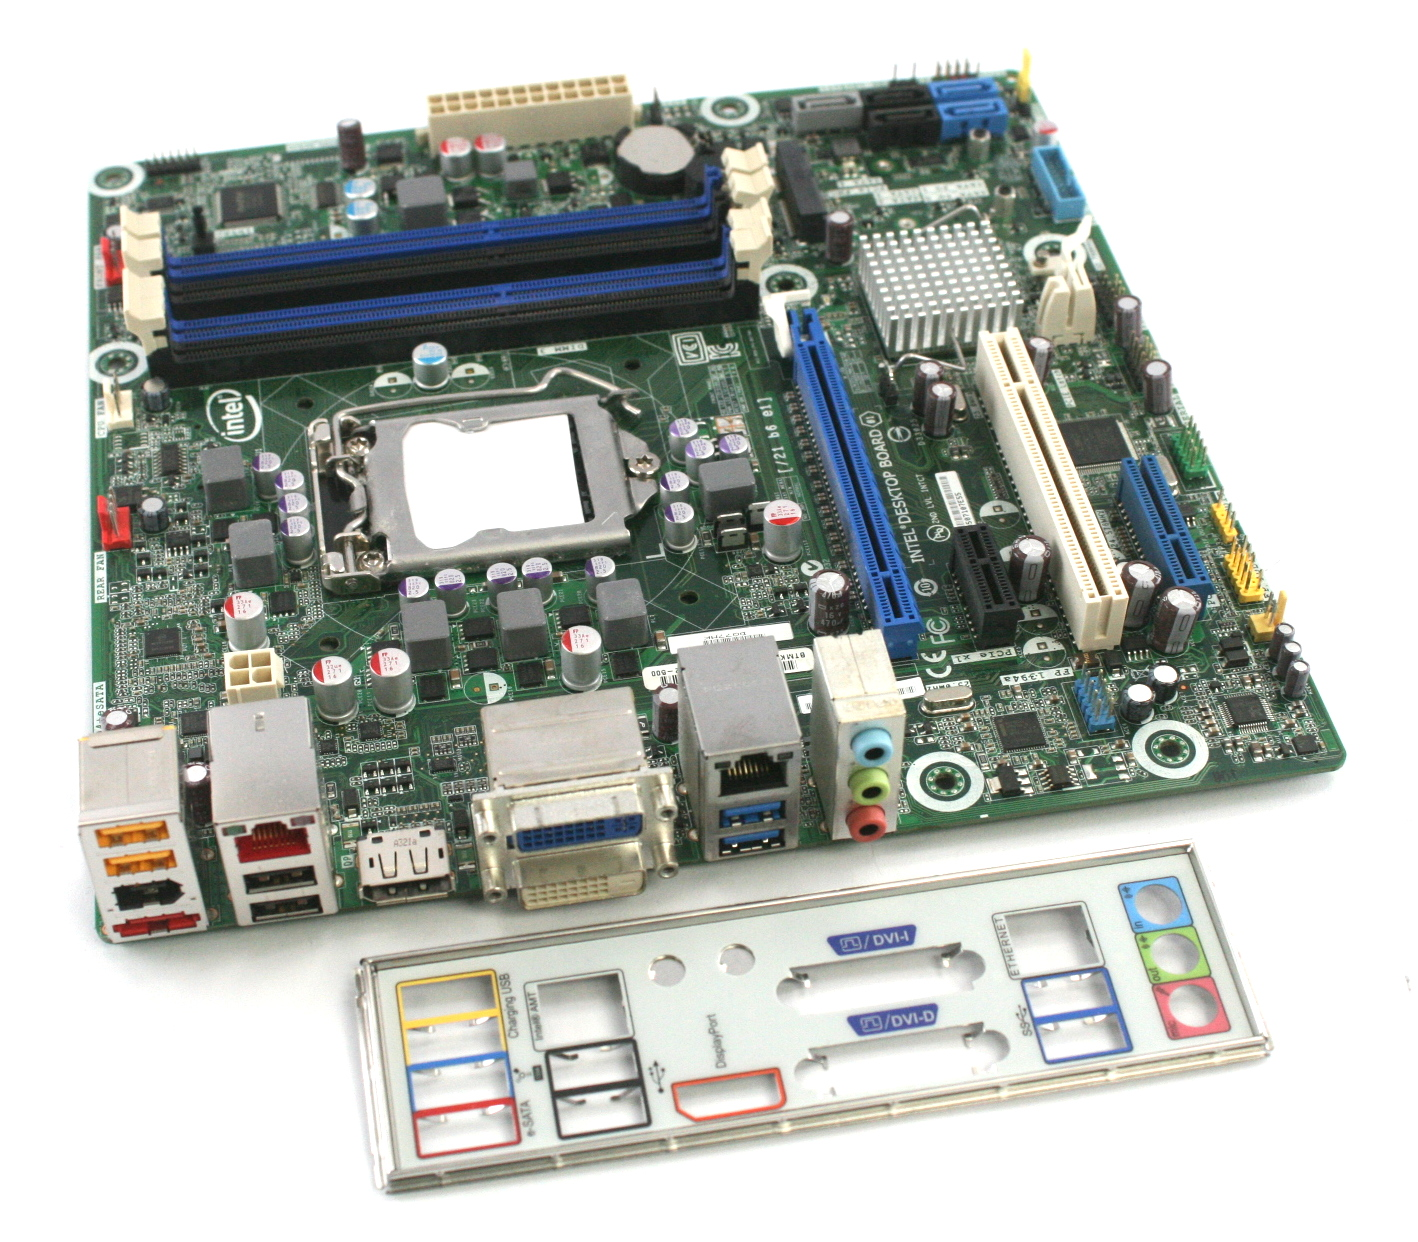 Intel Socket LGA1155 USB3.0 Desktop Motherboard mATX - DQ77MK